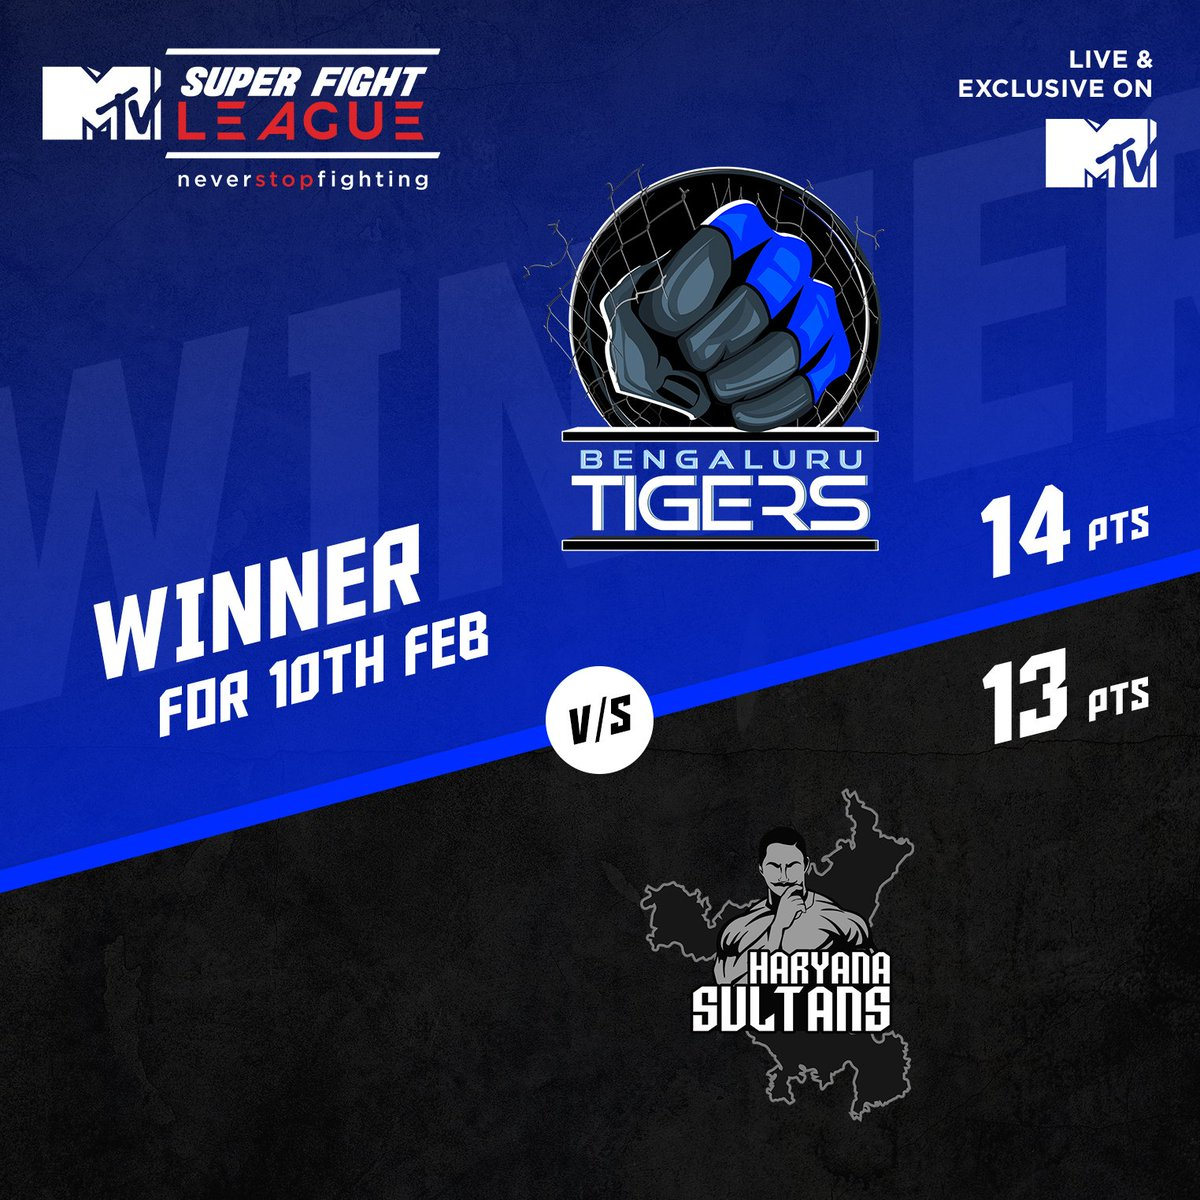 Super Fight League: Bengaluru Tigers edge out Haryana Sultans in a close match -